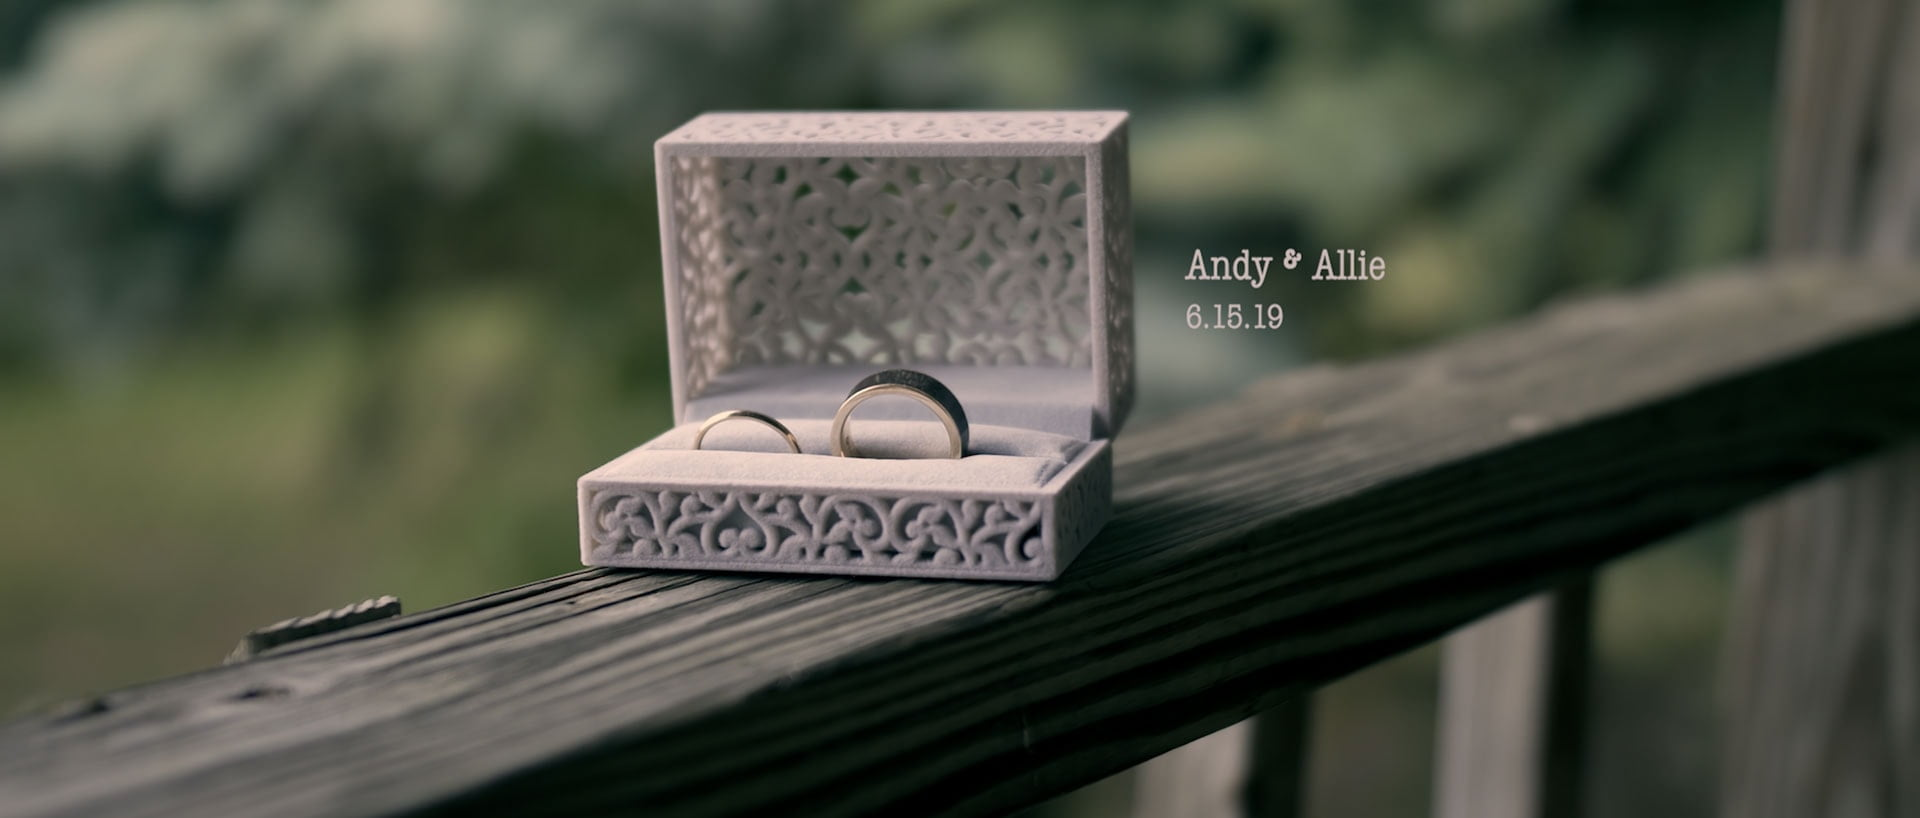 Andy Allie wedding film